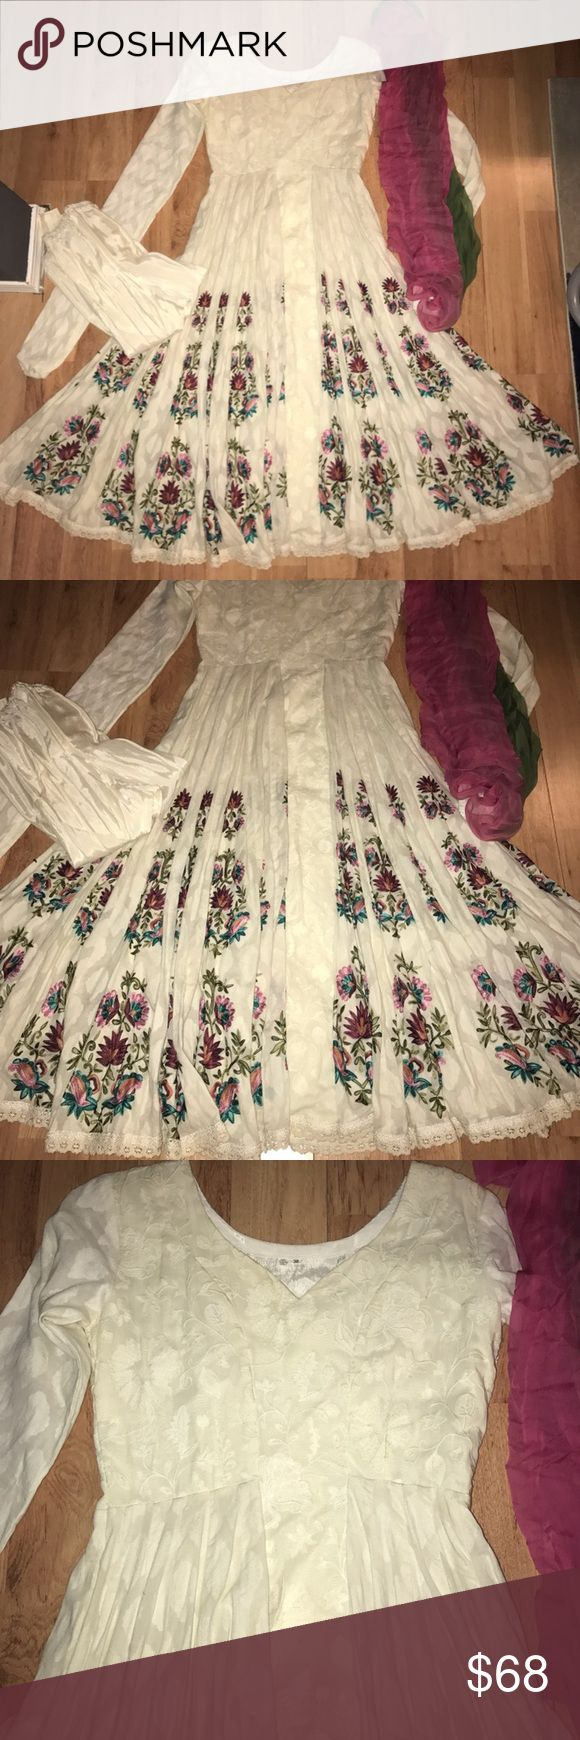 NWT Pakistani Dress Anarkali Cream & Floral! NWT new with tags cream & floral elegant Pakistani / Indian Anarkali Dress! Size 38, fits a medium/large Dresses